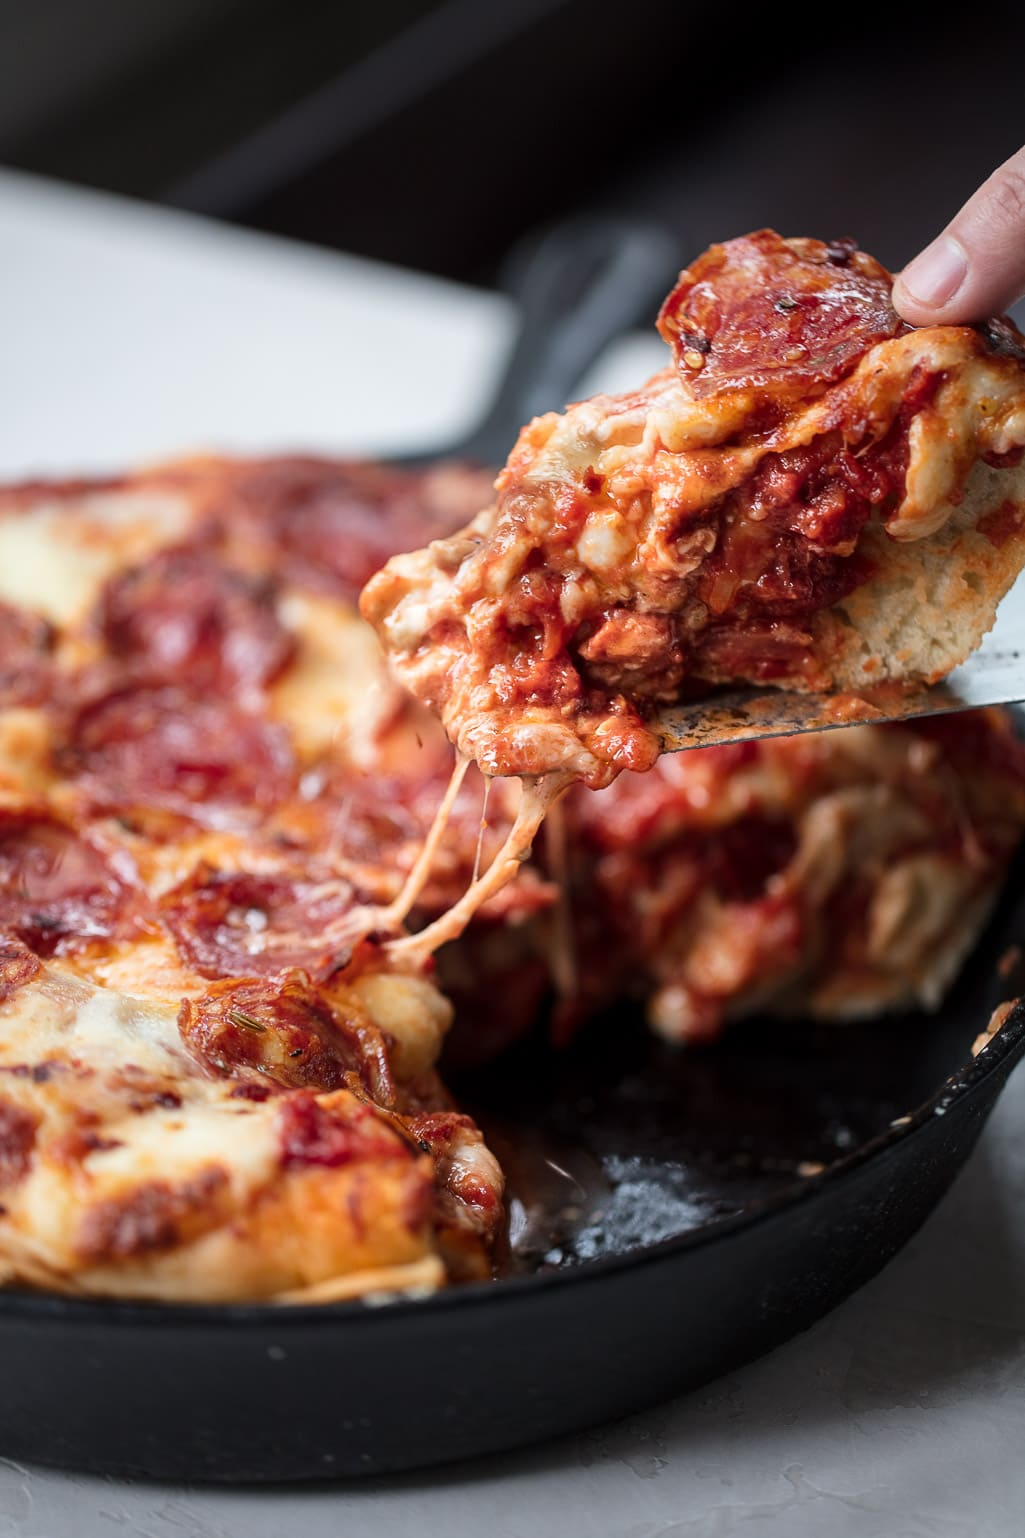 Stuffed Deep Dish Pizza with Spicy Salami